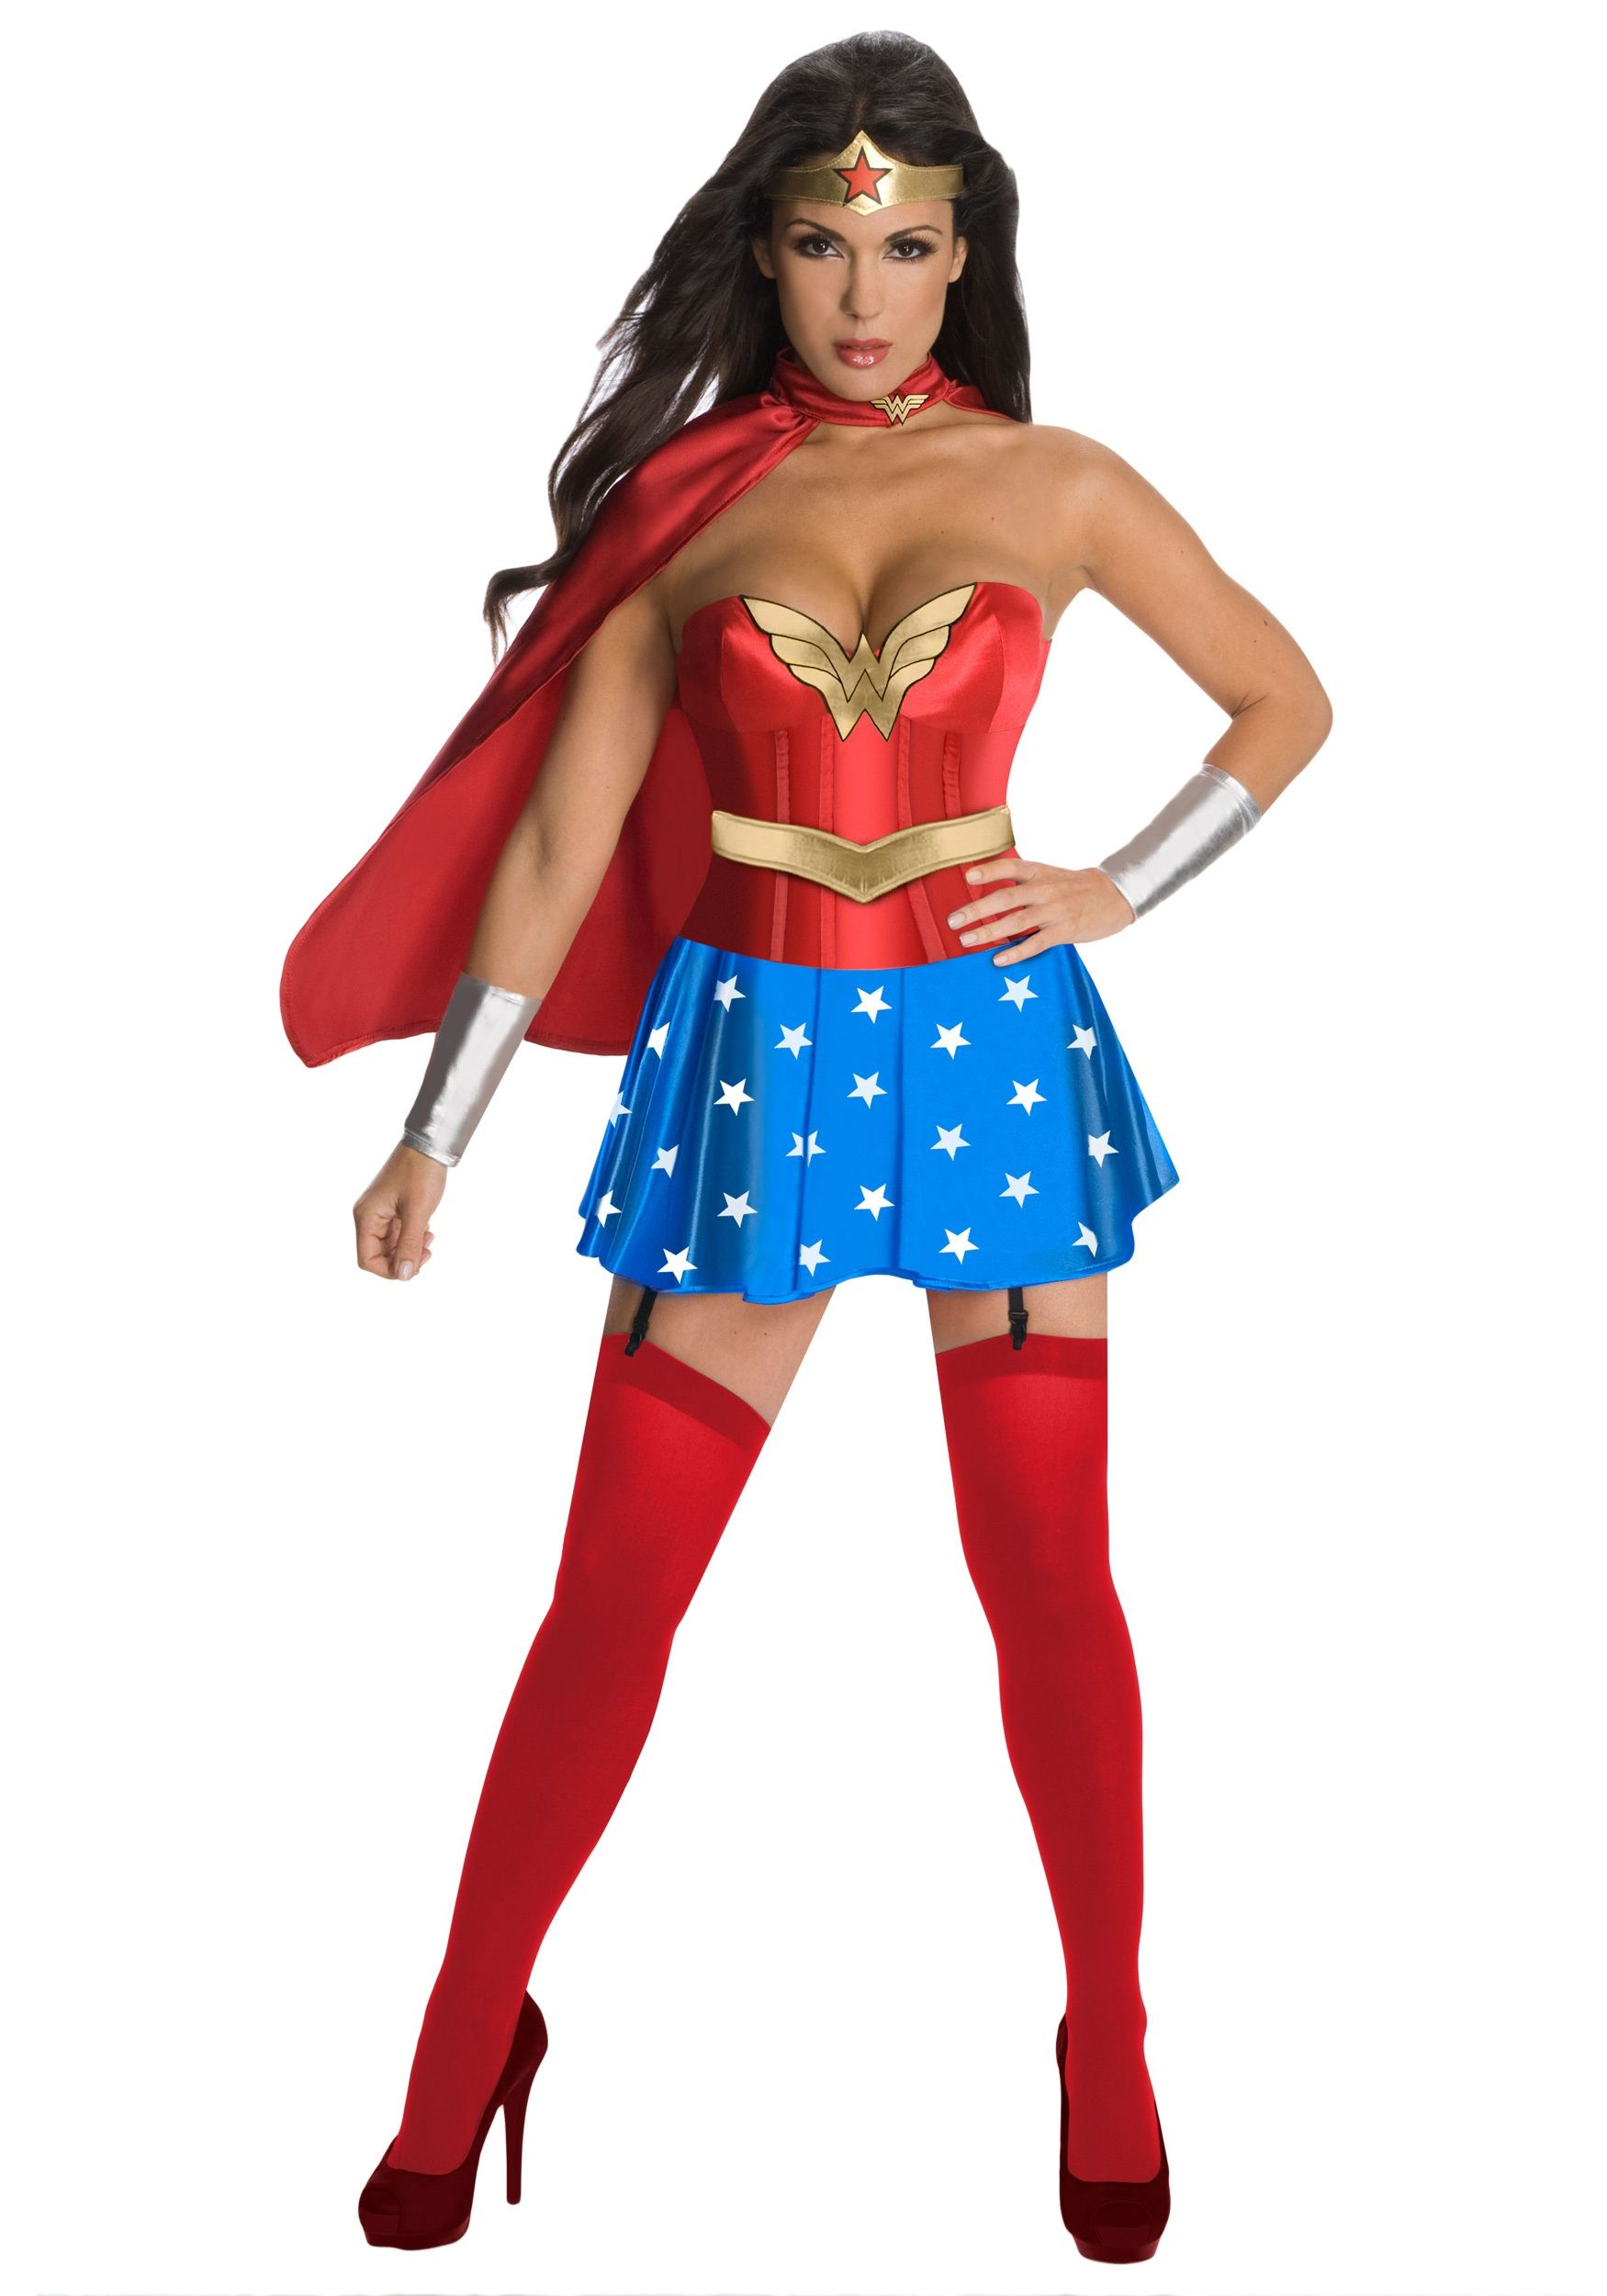 Wonder Woman Corset Costume   Corset costumes, Costumes and Woman ...